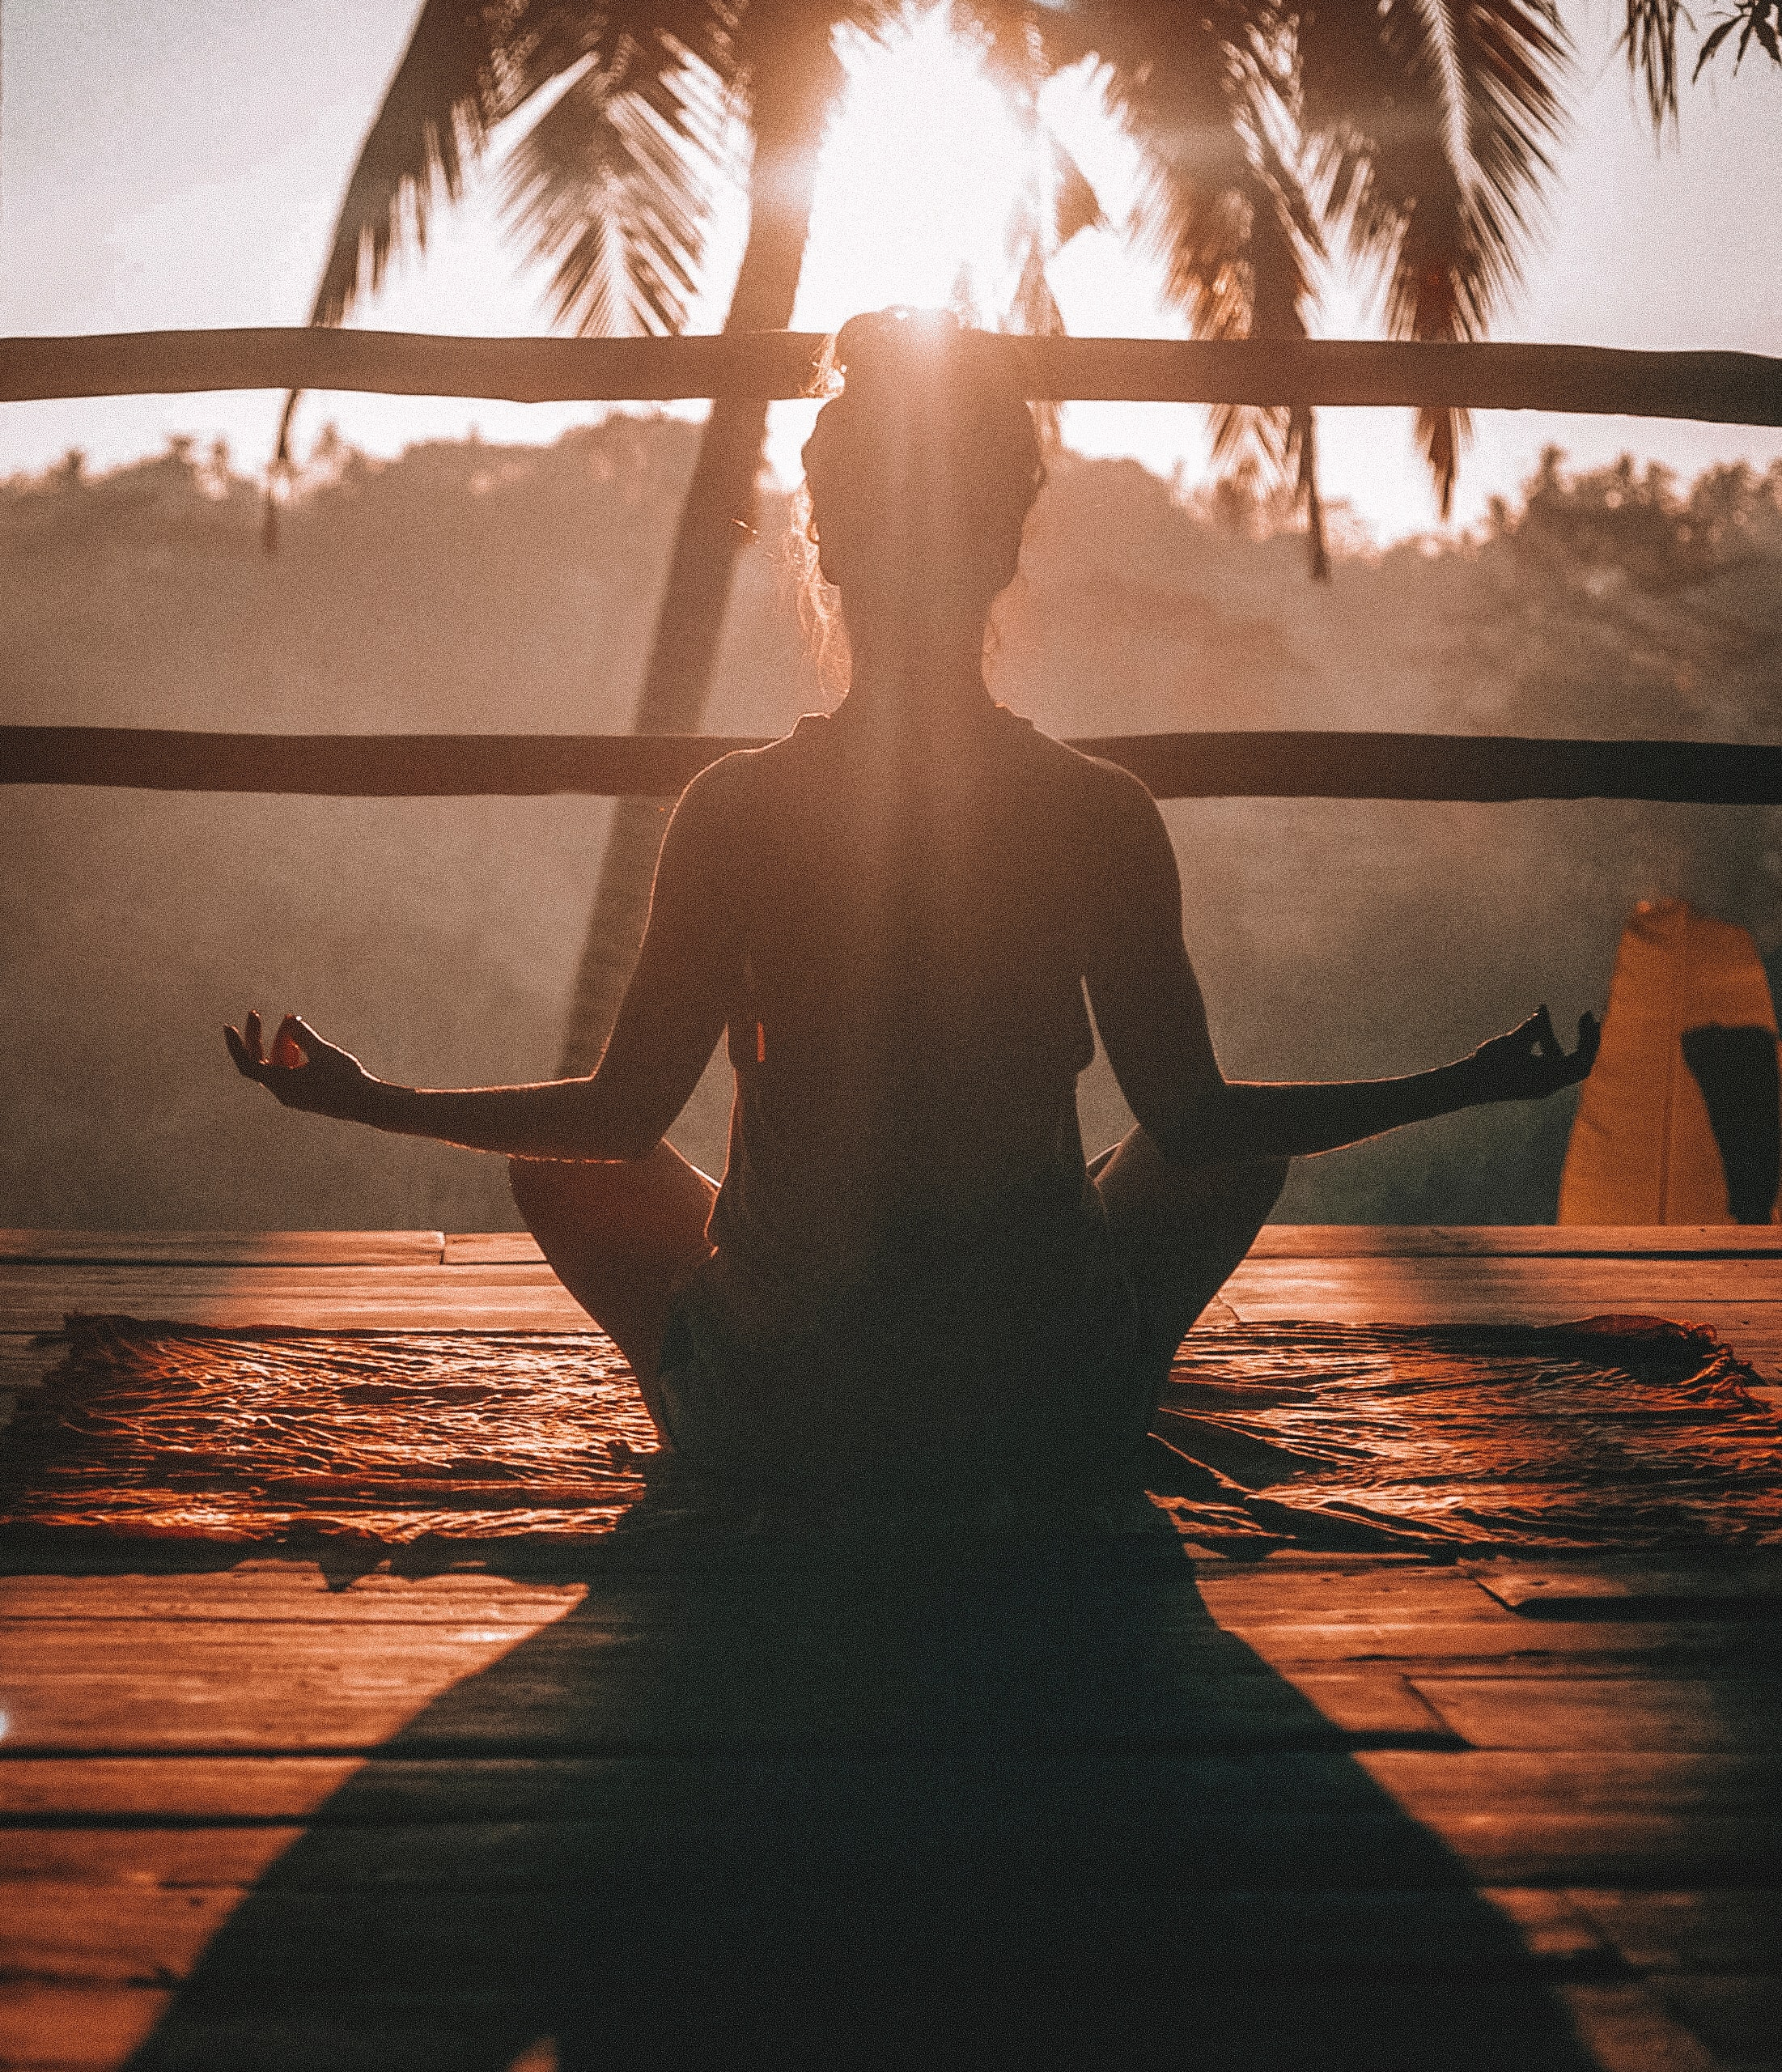 A woman meditating at sunset.